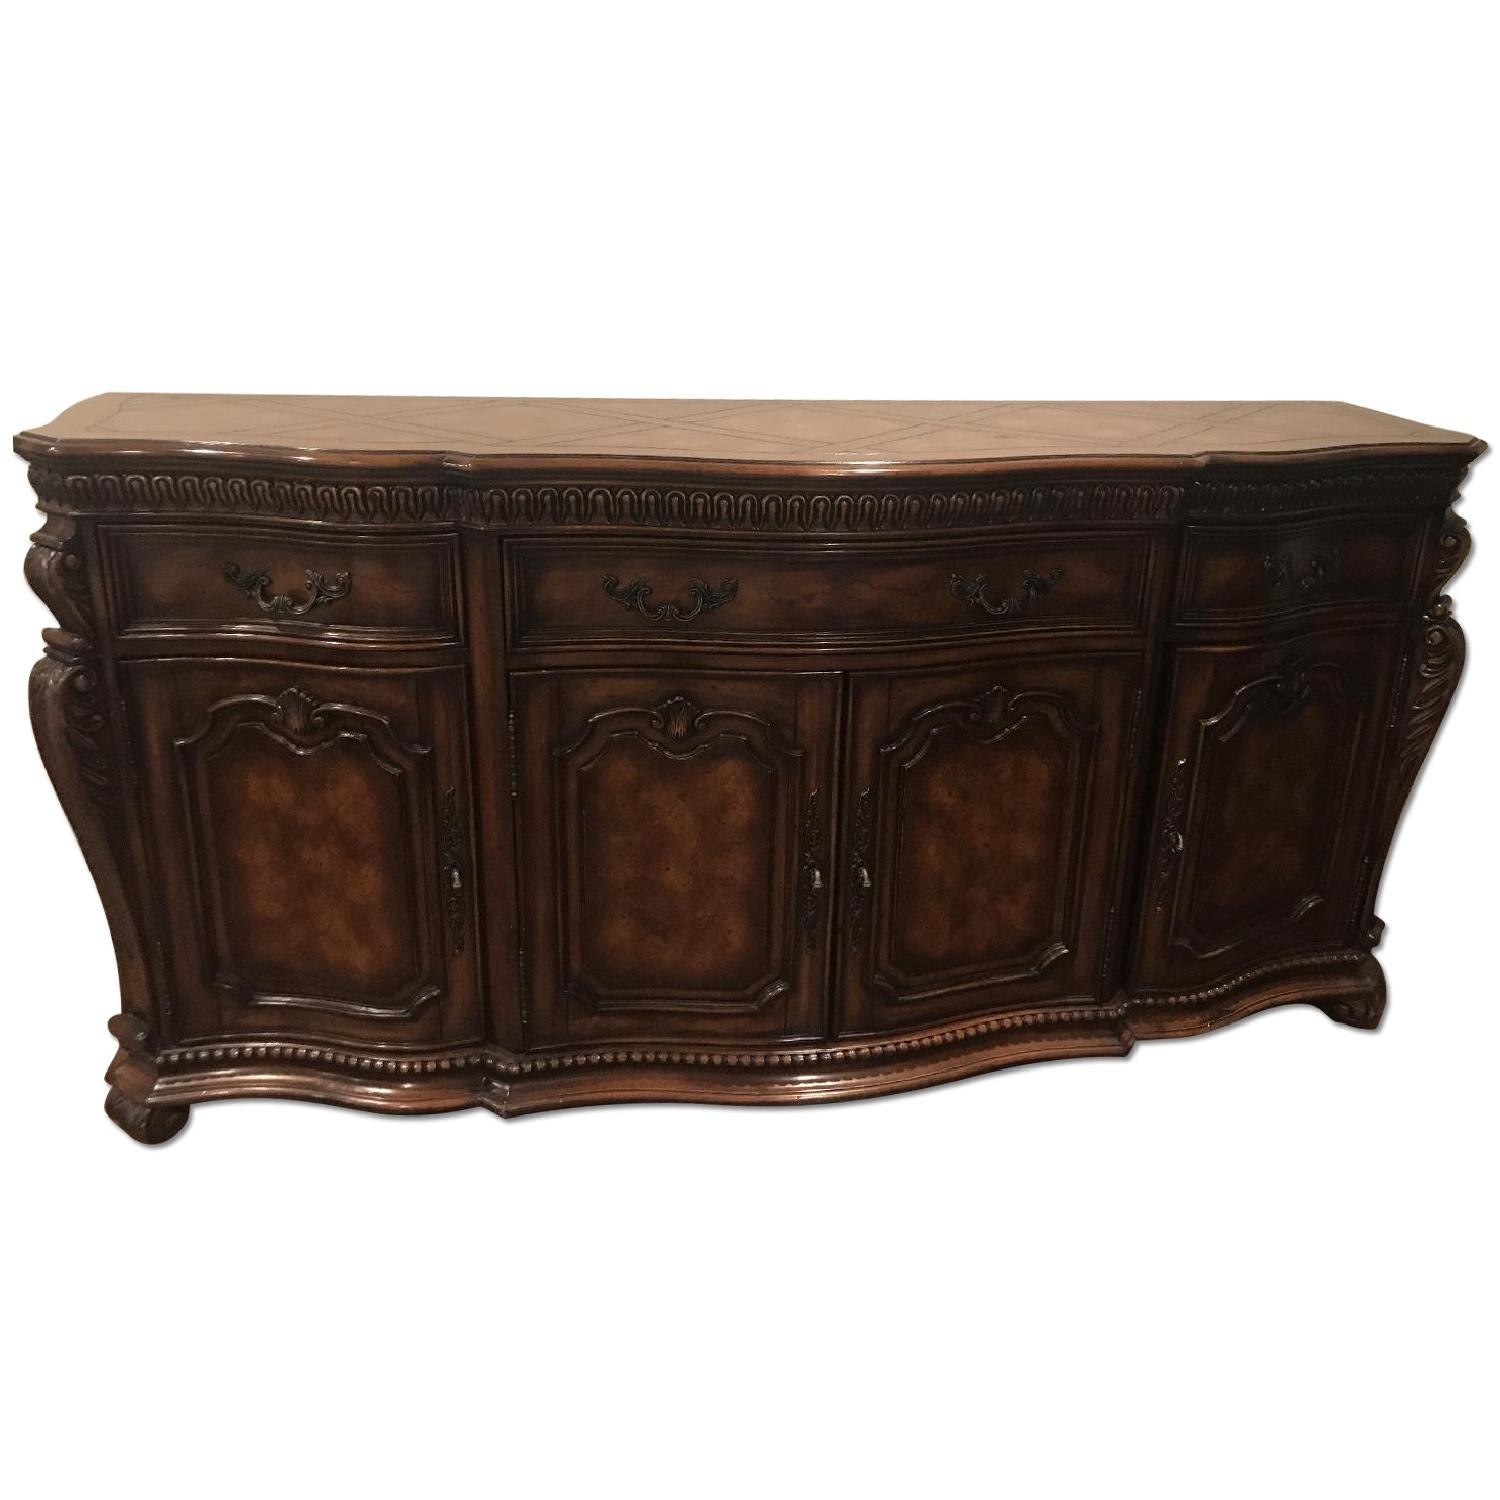 Hooker Furniture Mahogany Detailed Wood Chest